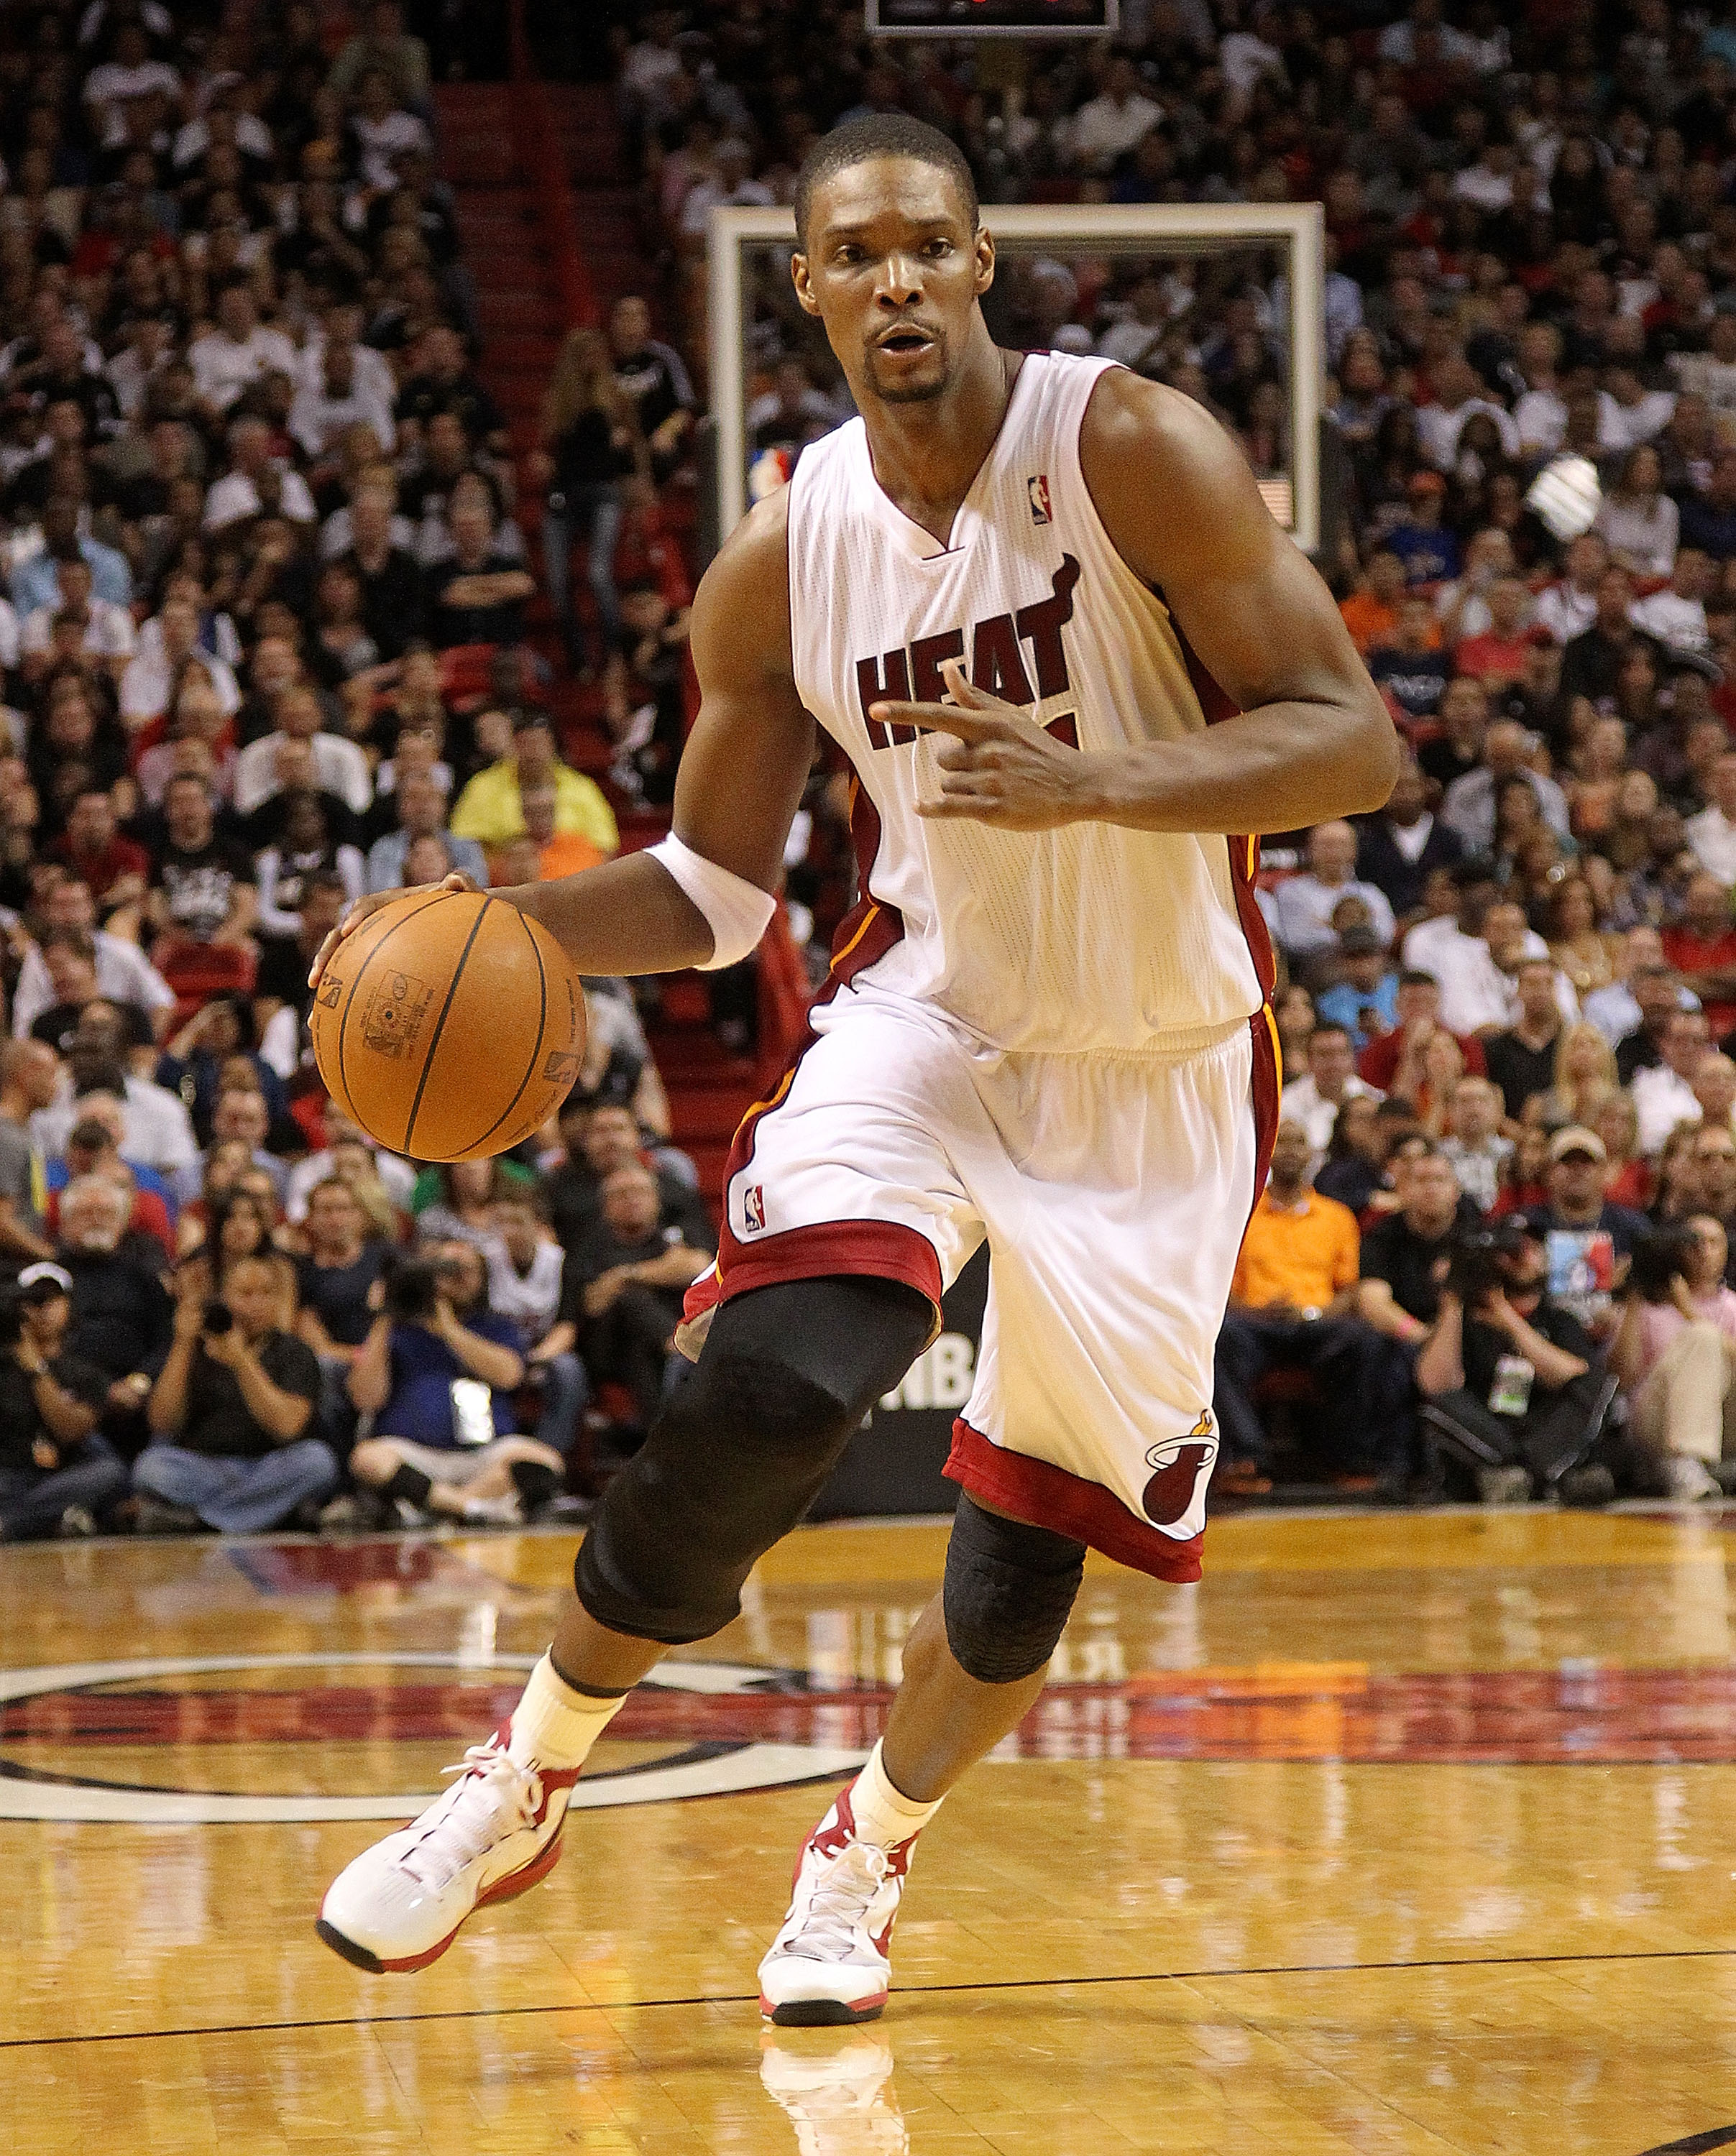 MIAMI, FL - FEBRUARY 27: Chris Bosh #1 of the Miami Heat drives during a game gainst the New York Knicks at American Airlines Arena on February 27, 2011 in Miami, Florida. NOTE TO USER: User expressly acknowledges and agrees that, by downloading and/or us